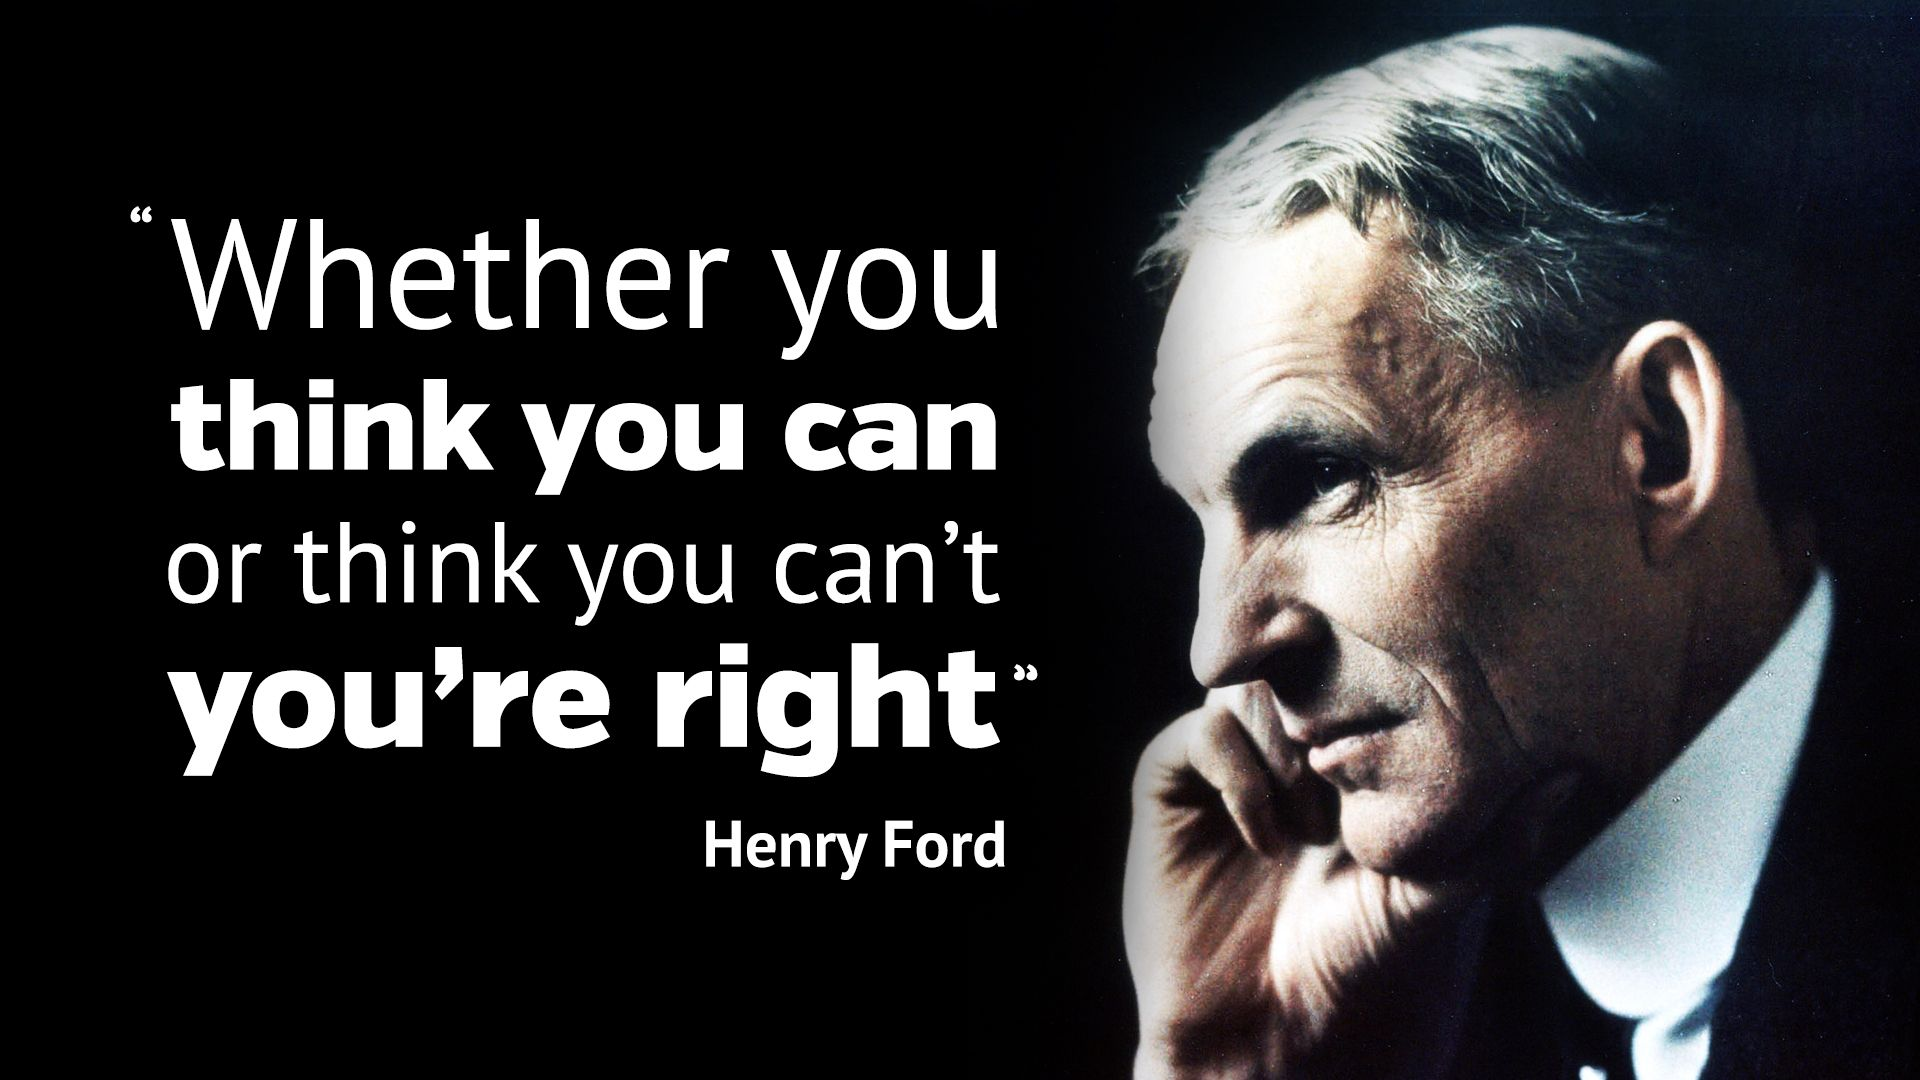 Henry Ford Whether You Think You Can Or Think You Can T You Re Right Henry Ford Quotes Ford Quotes Henry Ford